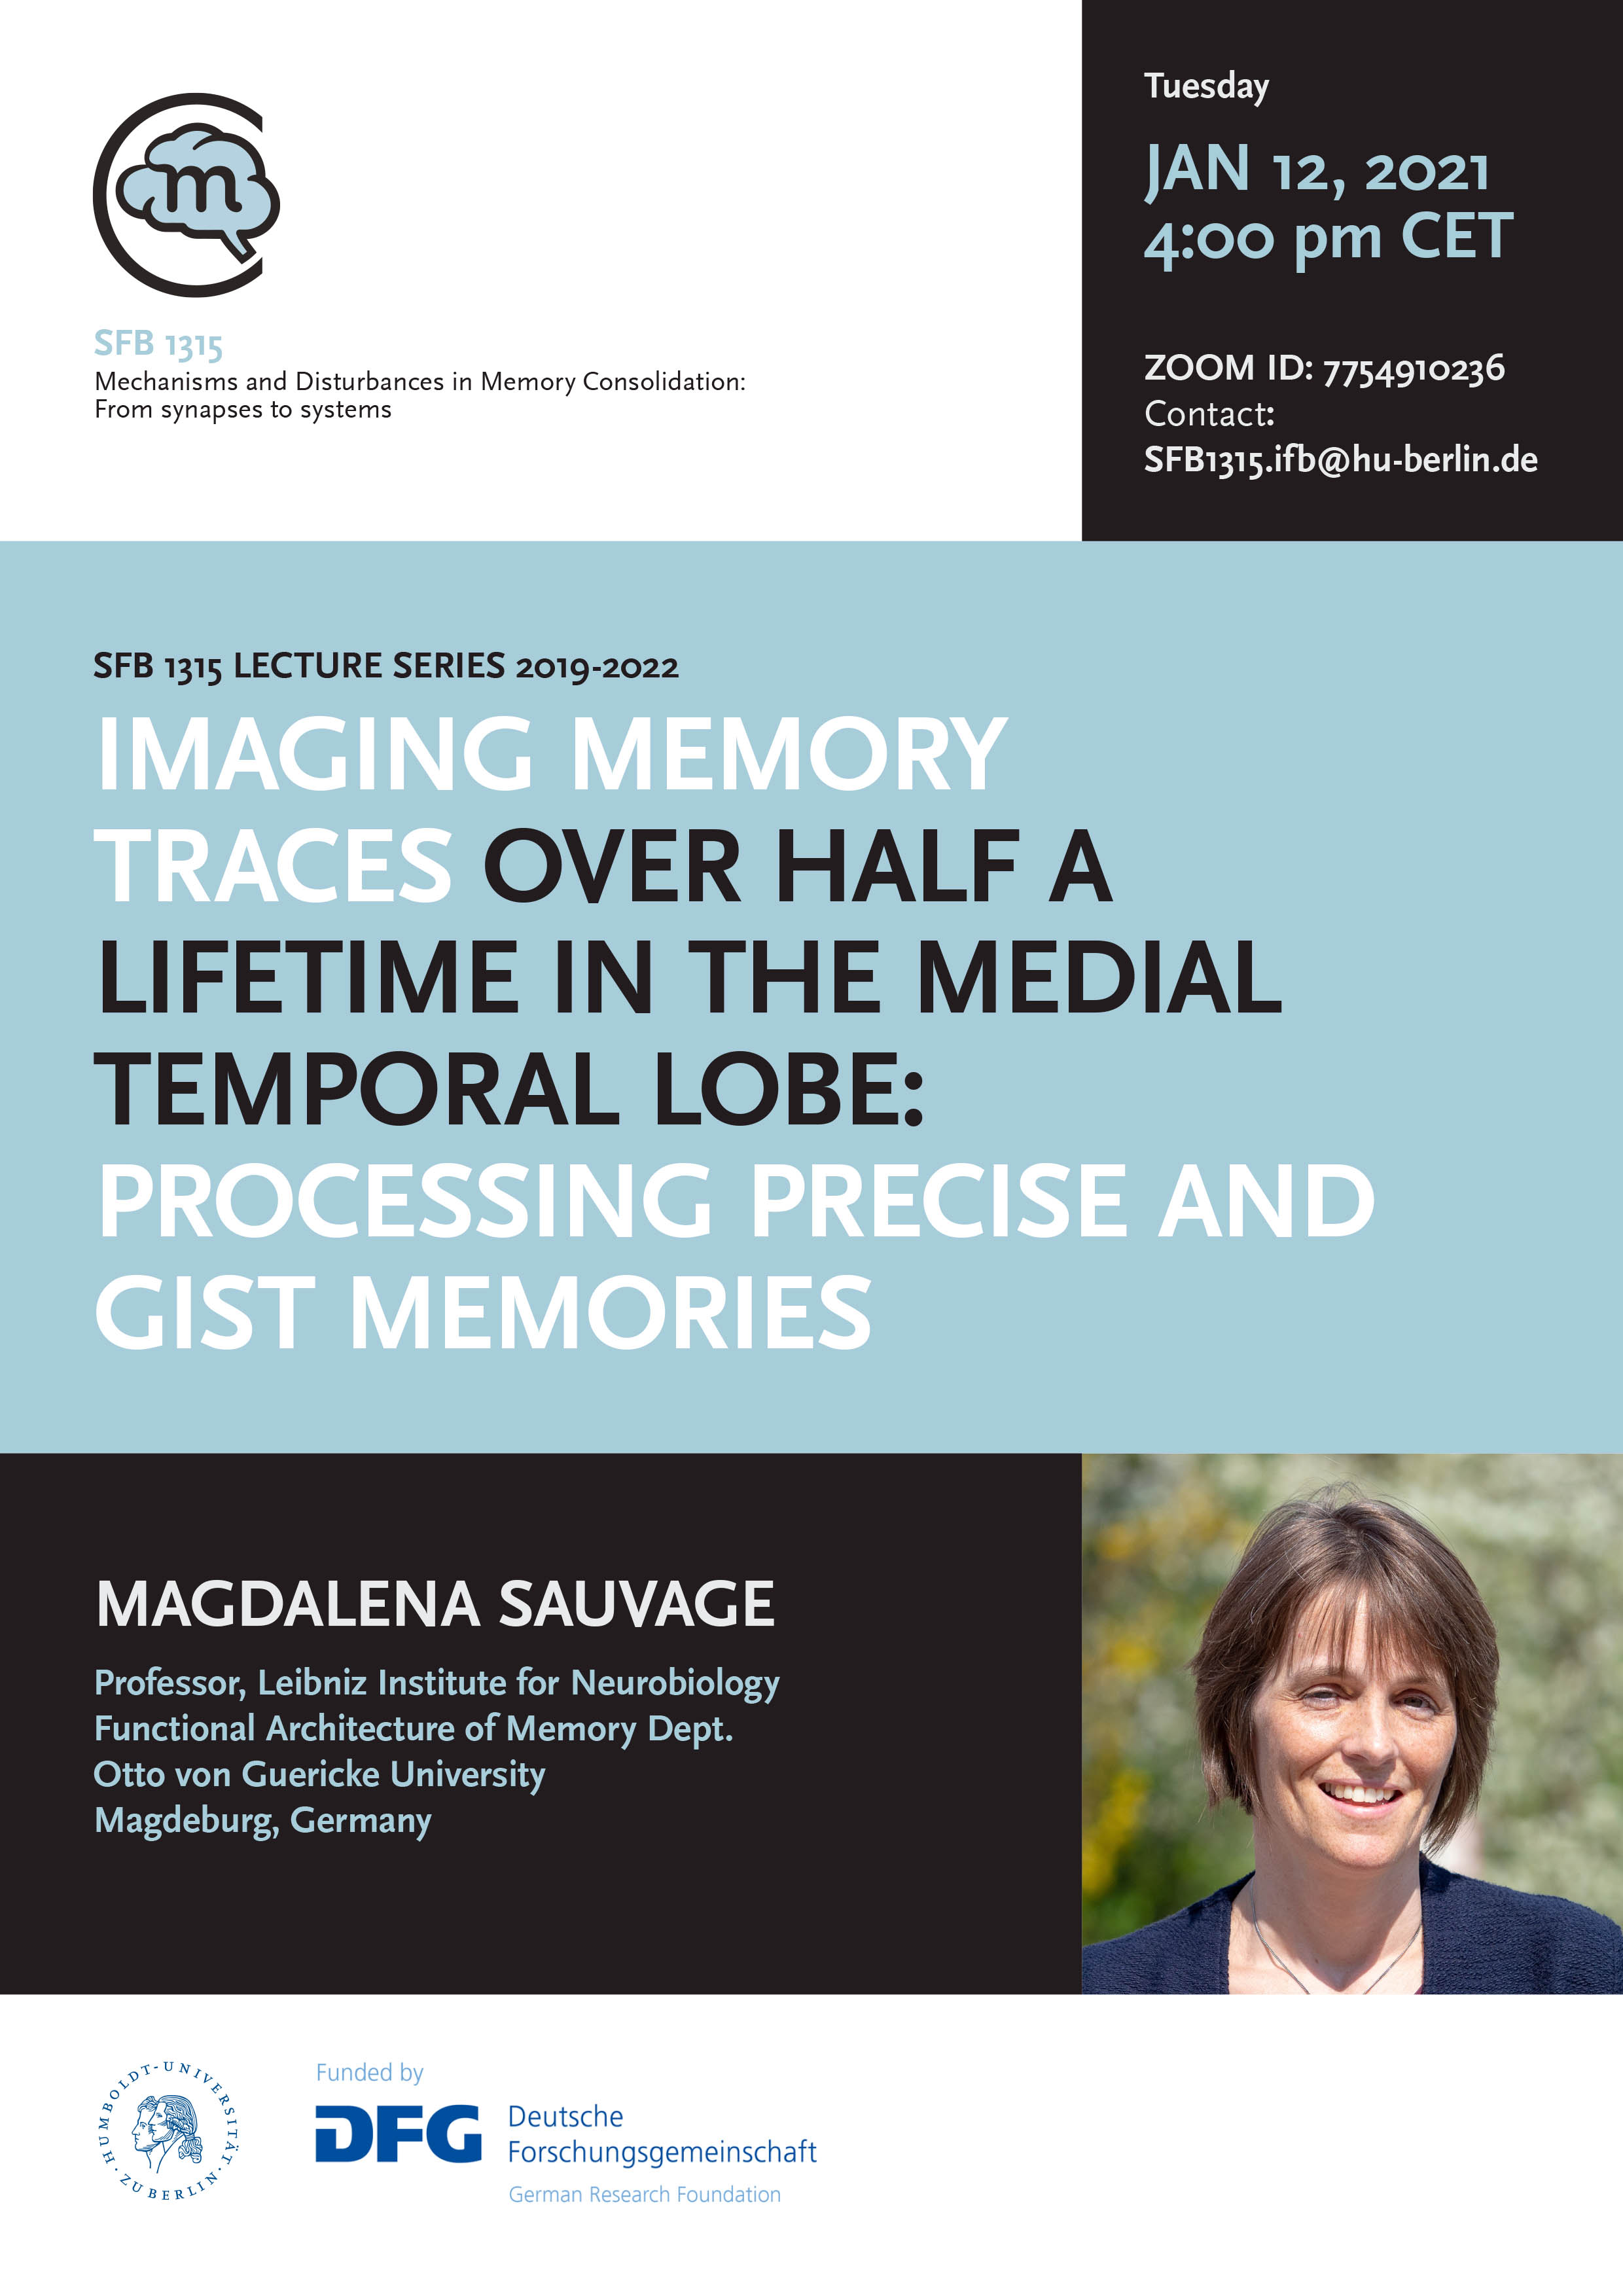 SFB 1315 Lecture: IMAGING MEMORY TRACES OVER HALF A LIFETIME IN THE MEDIAL TEMPORAL LOBE: PROCESSING PRECISE AND GIST MEMORIES @ Zoom: 7754910236